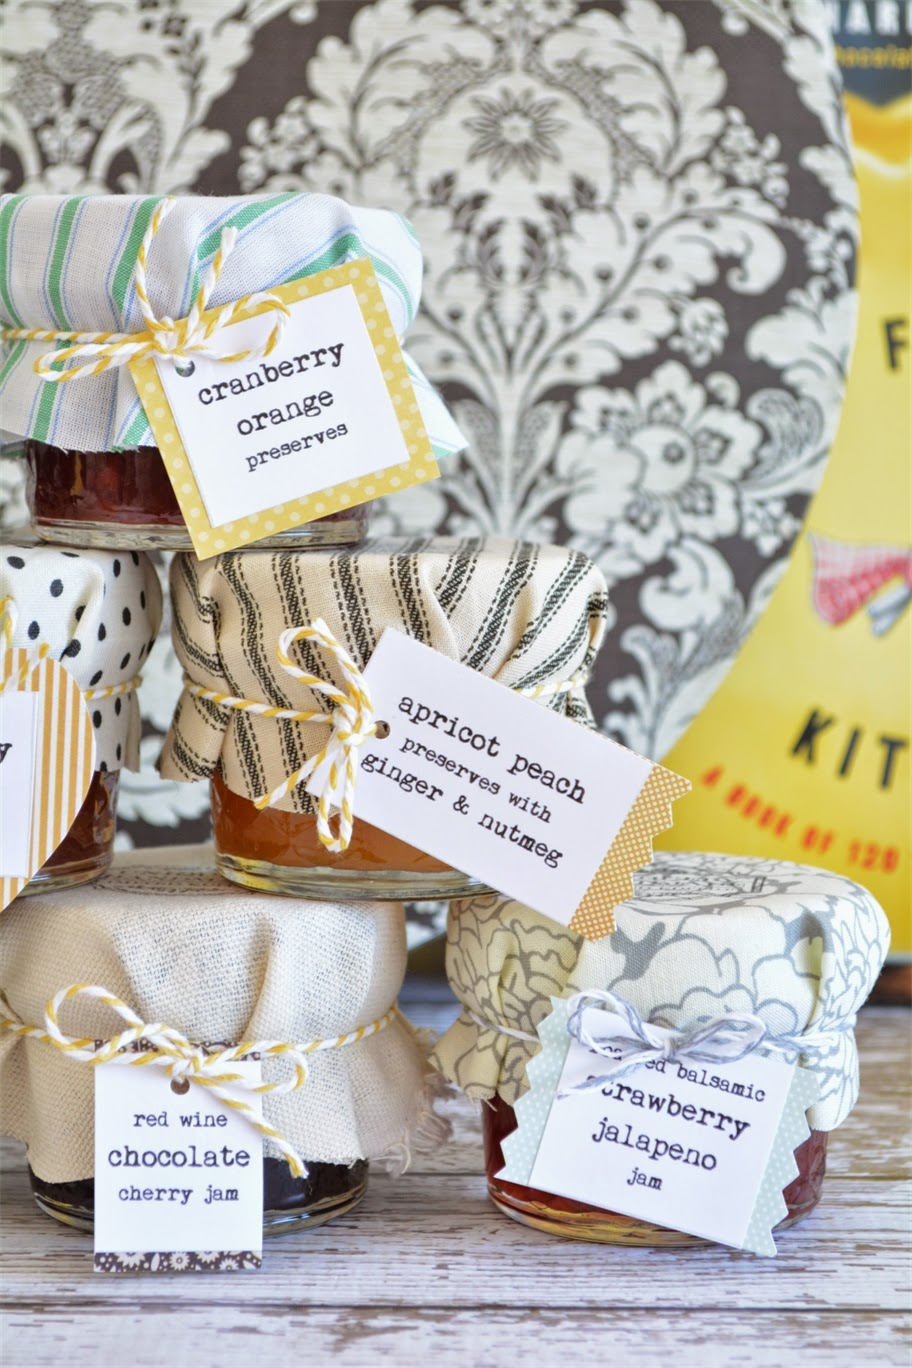 Curly Girl Kitchen: Curly Girl Wedding: Homemade Jam for Guest Favors